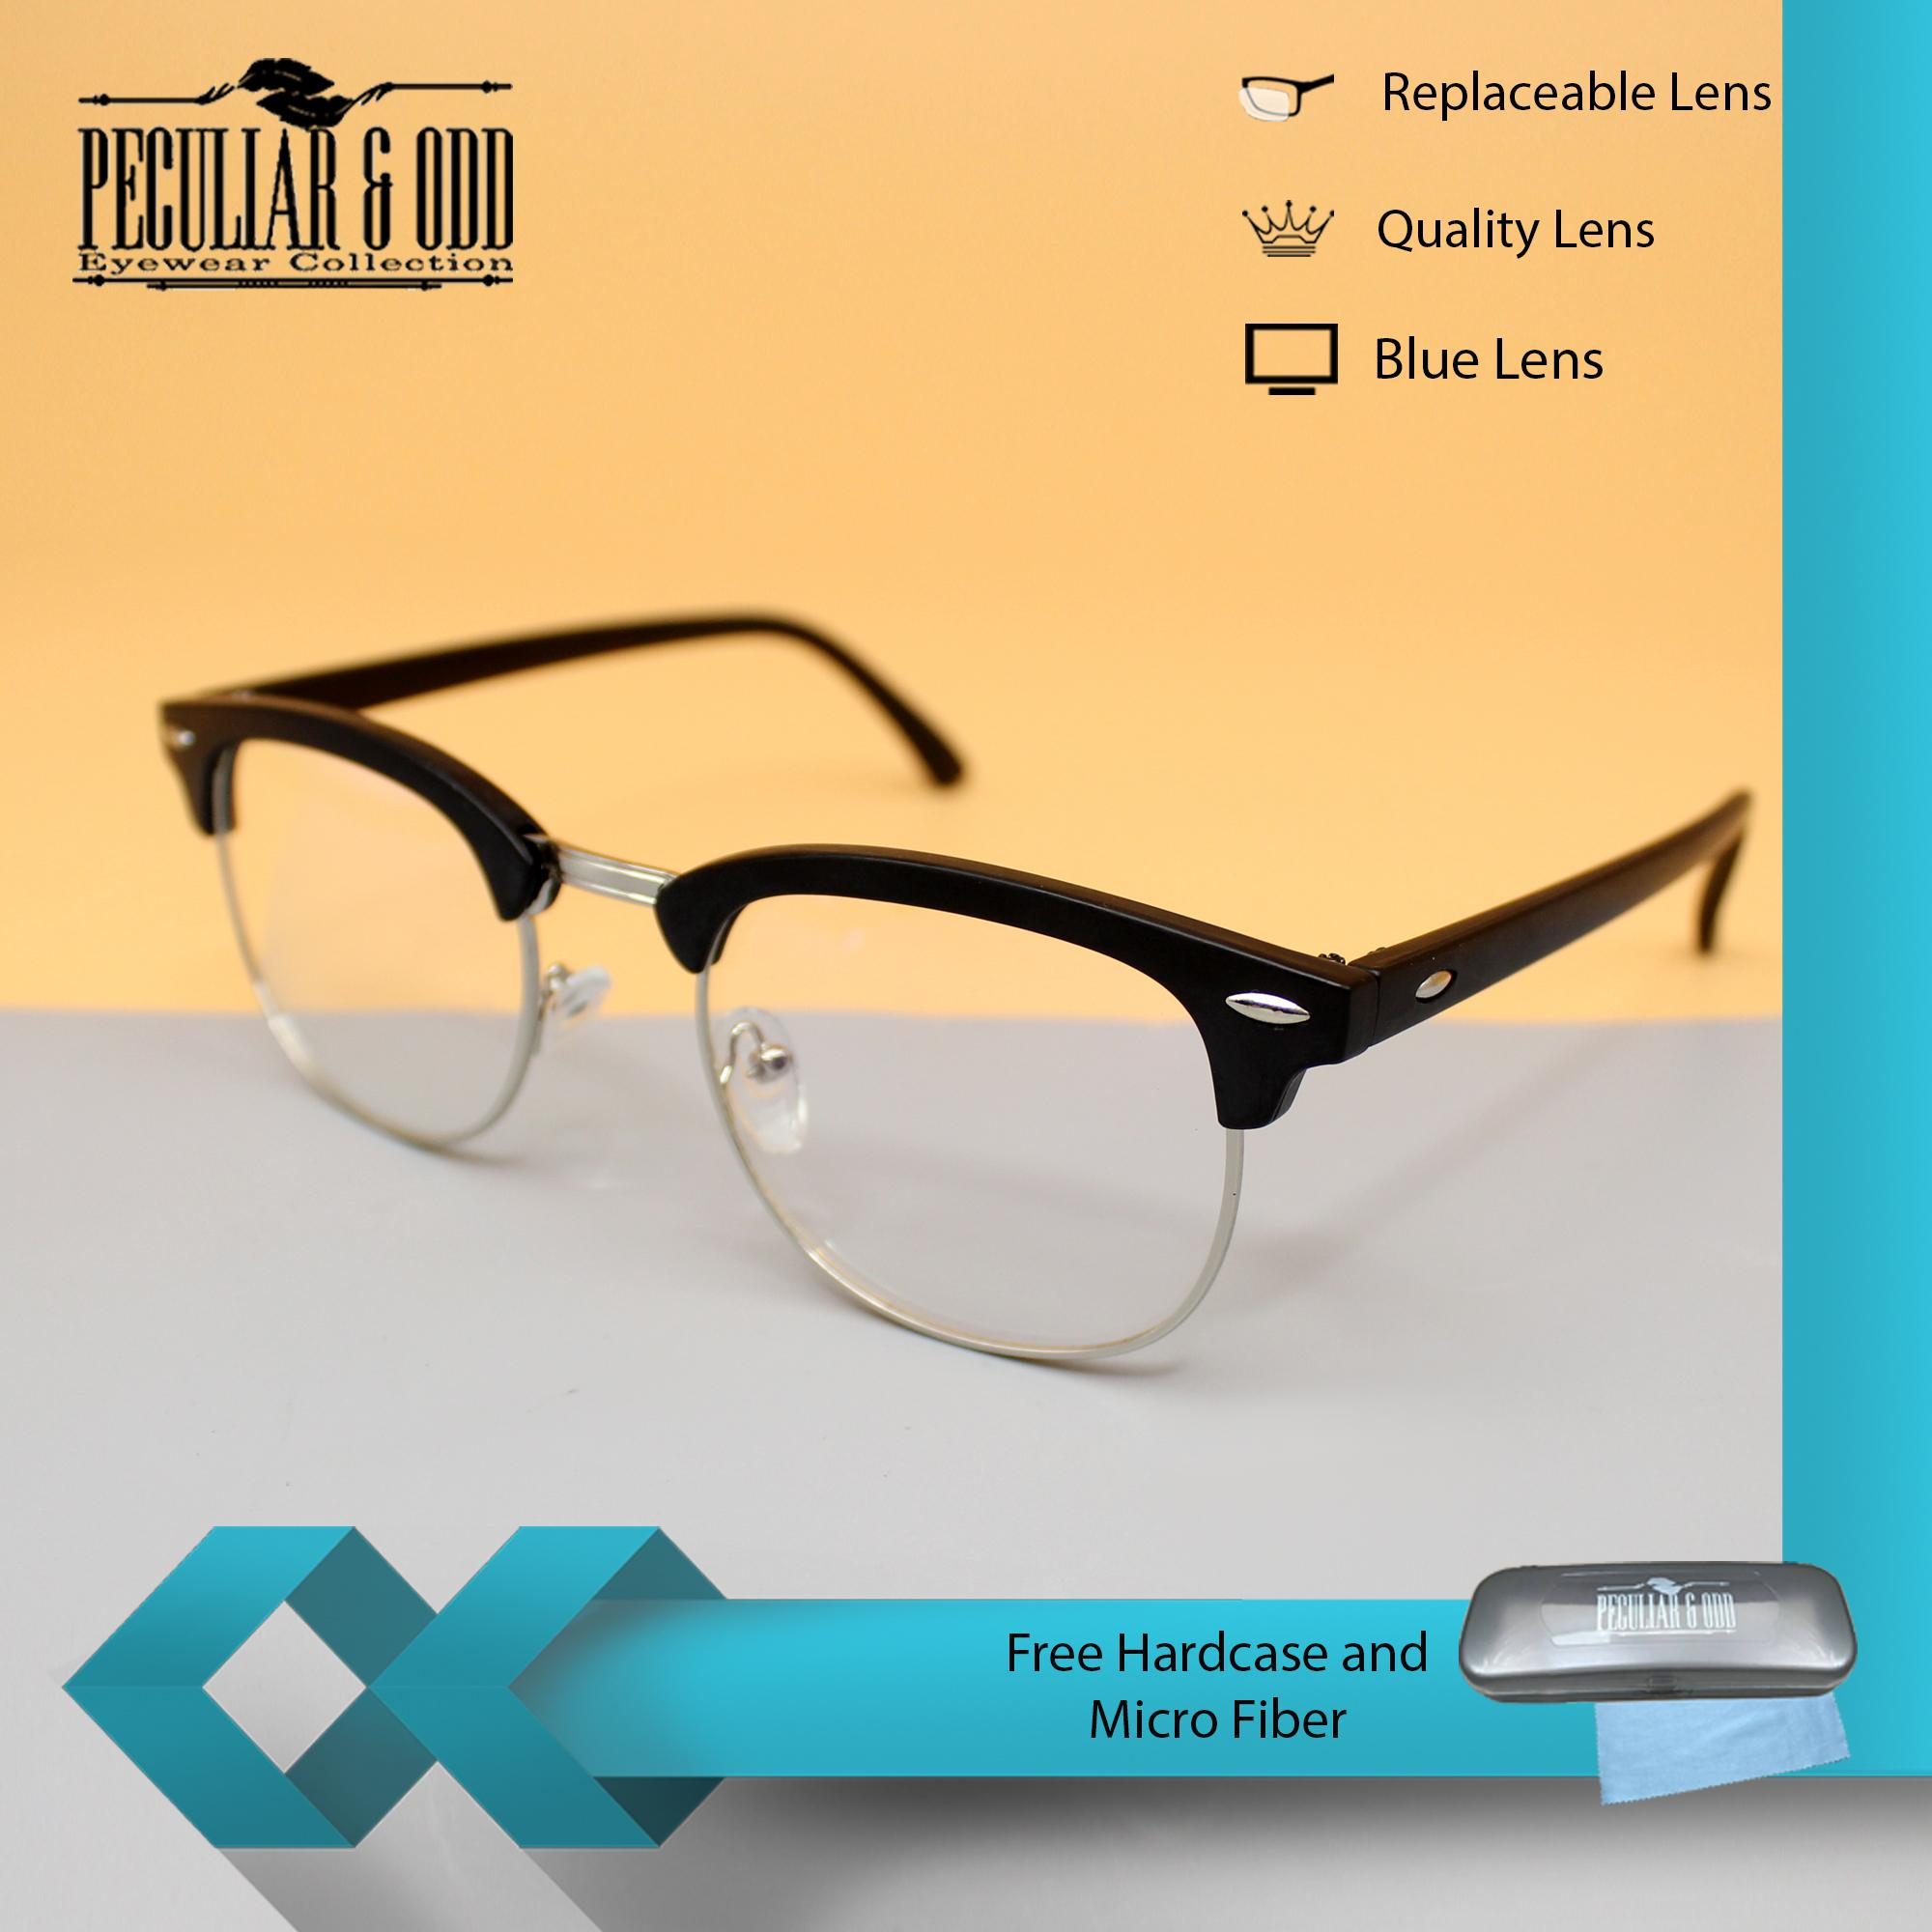 Clubmaster Classic Eyeglass 1365_BlackSilver Unisex Computer Eyeglasses  Anti Radiation Replaceable Lens Optical Frame Blue lens_NEW